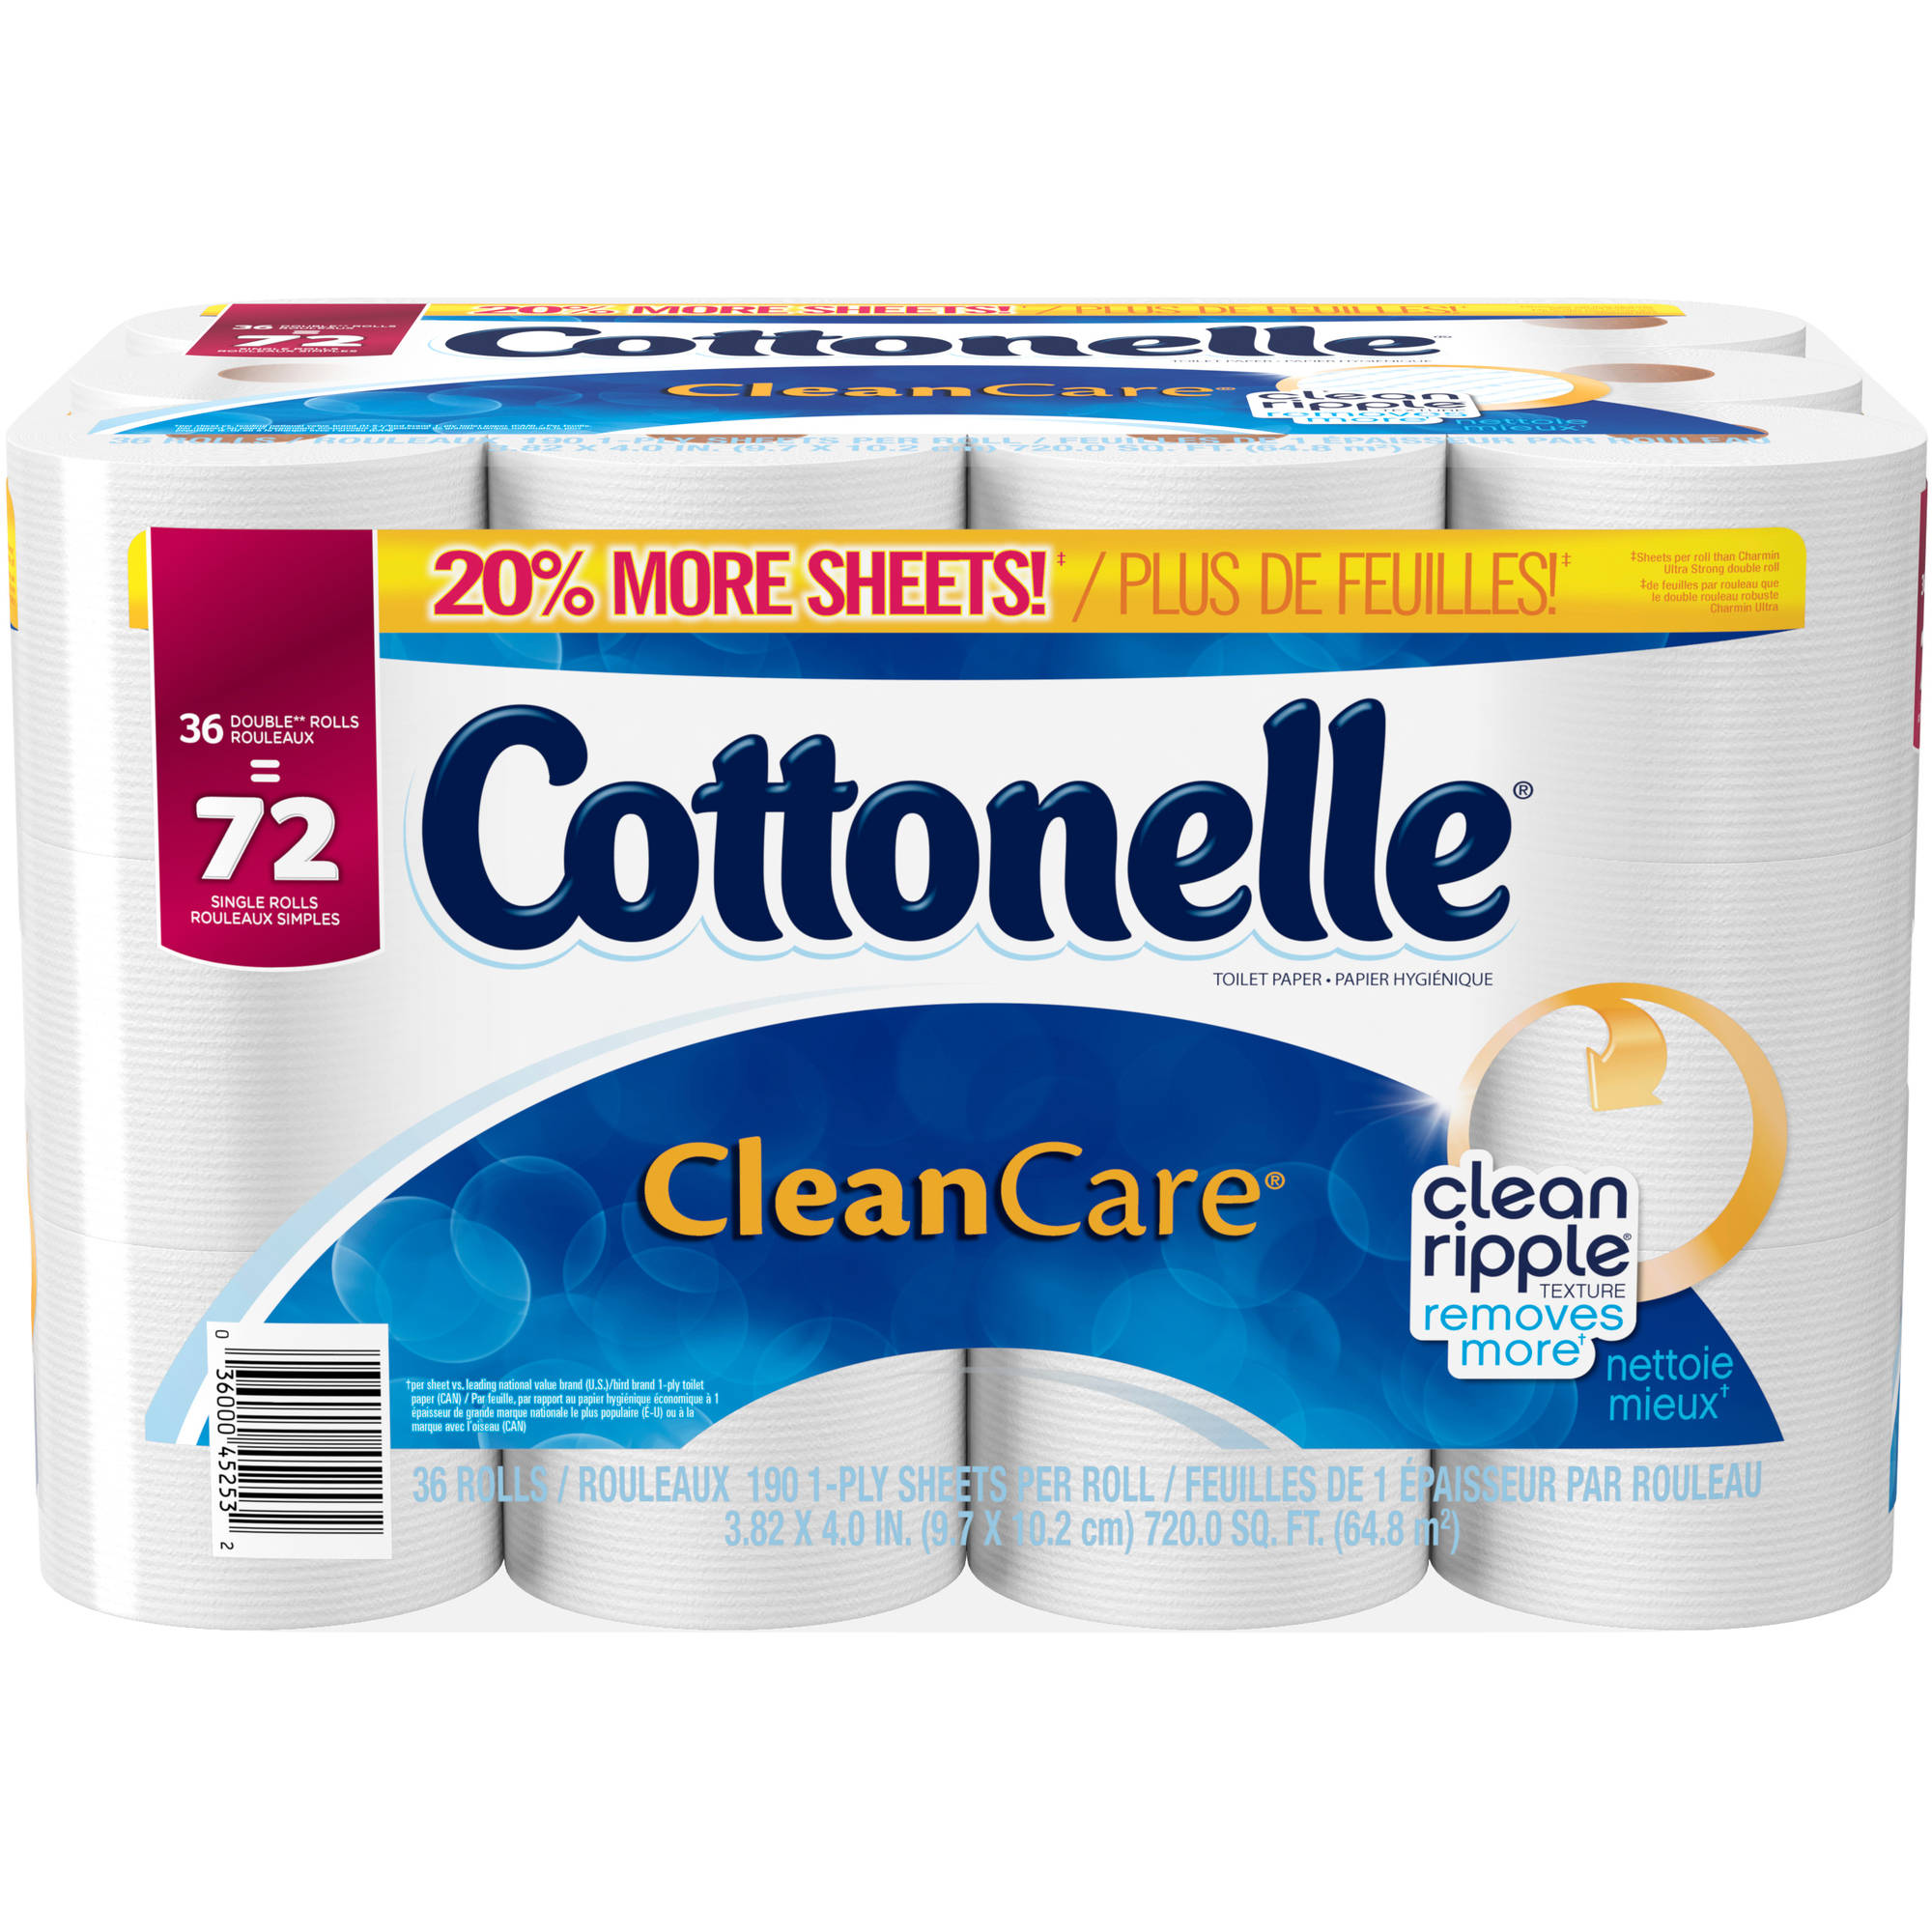 Cottonelle Clean Care Double Roll Toilet Paper, 190 sheets, 36 rolls